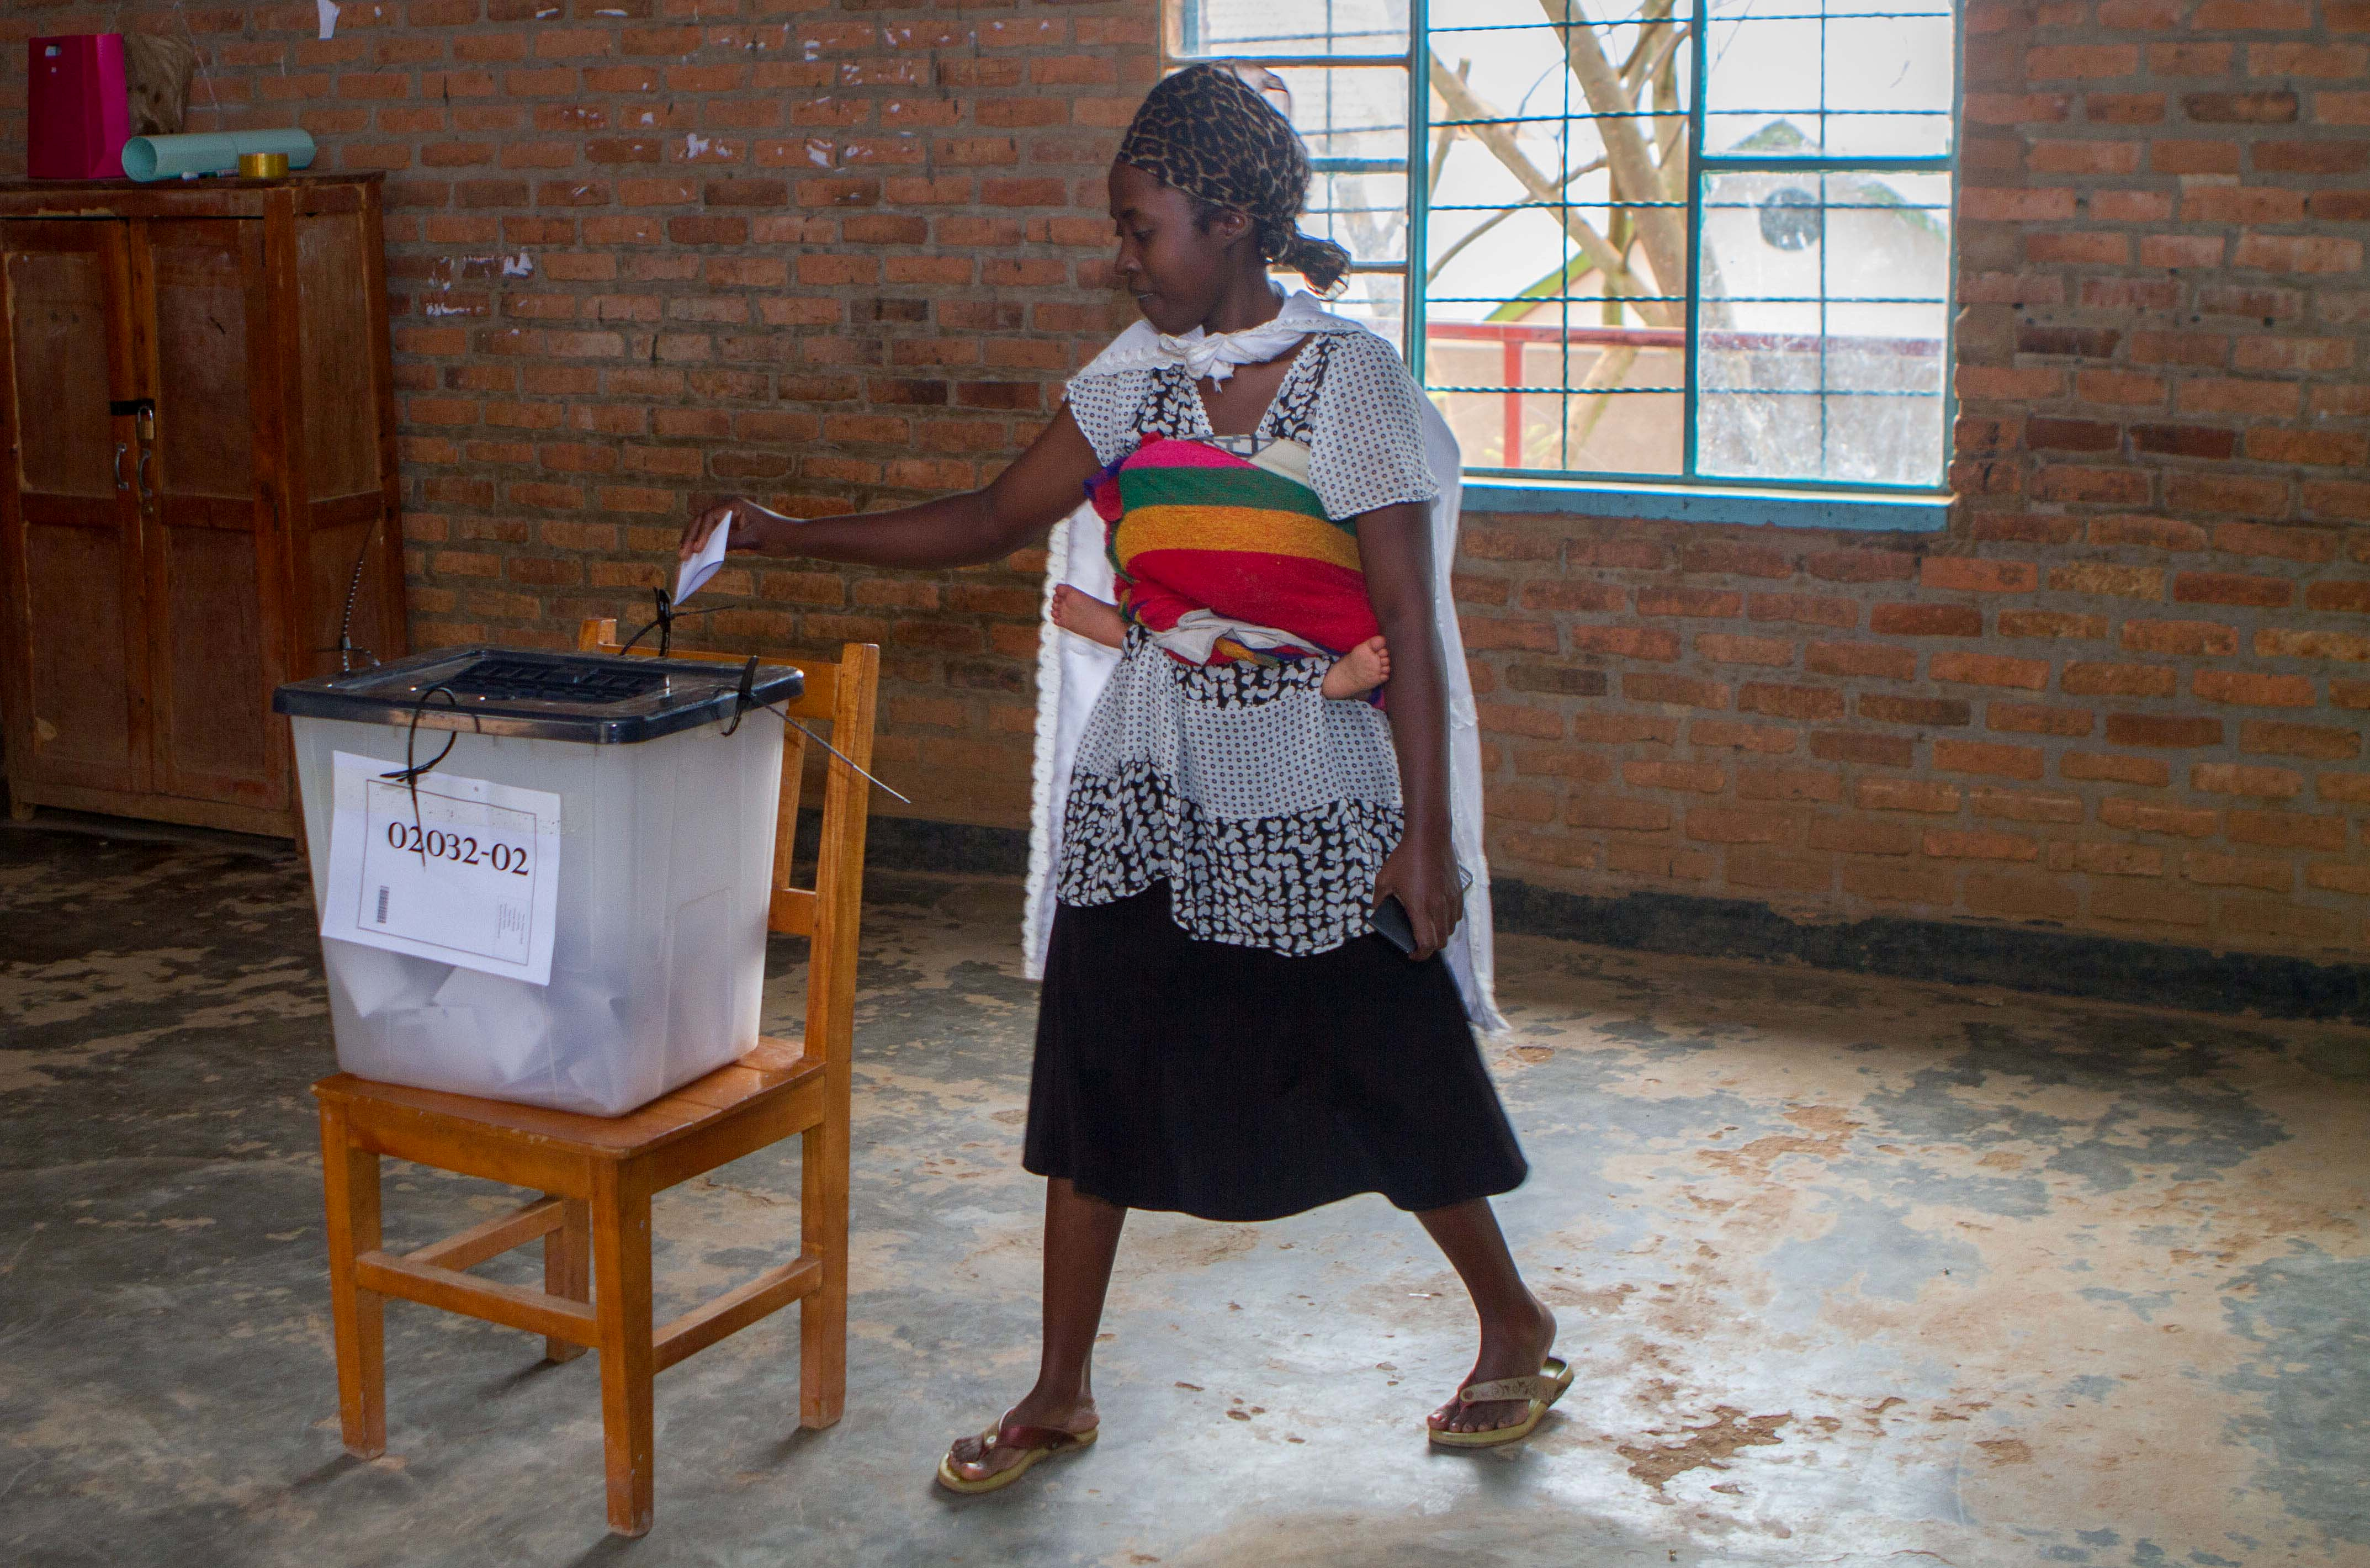 A voter casts her ballot at a polling station in Kigali, Rwanda, August 4, 2017. REUTERS/Jean Bizimana - RTS1AC62